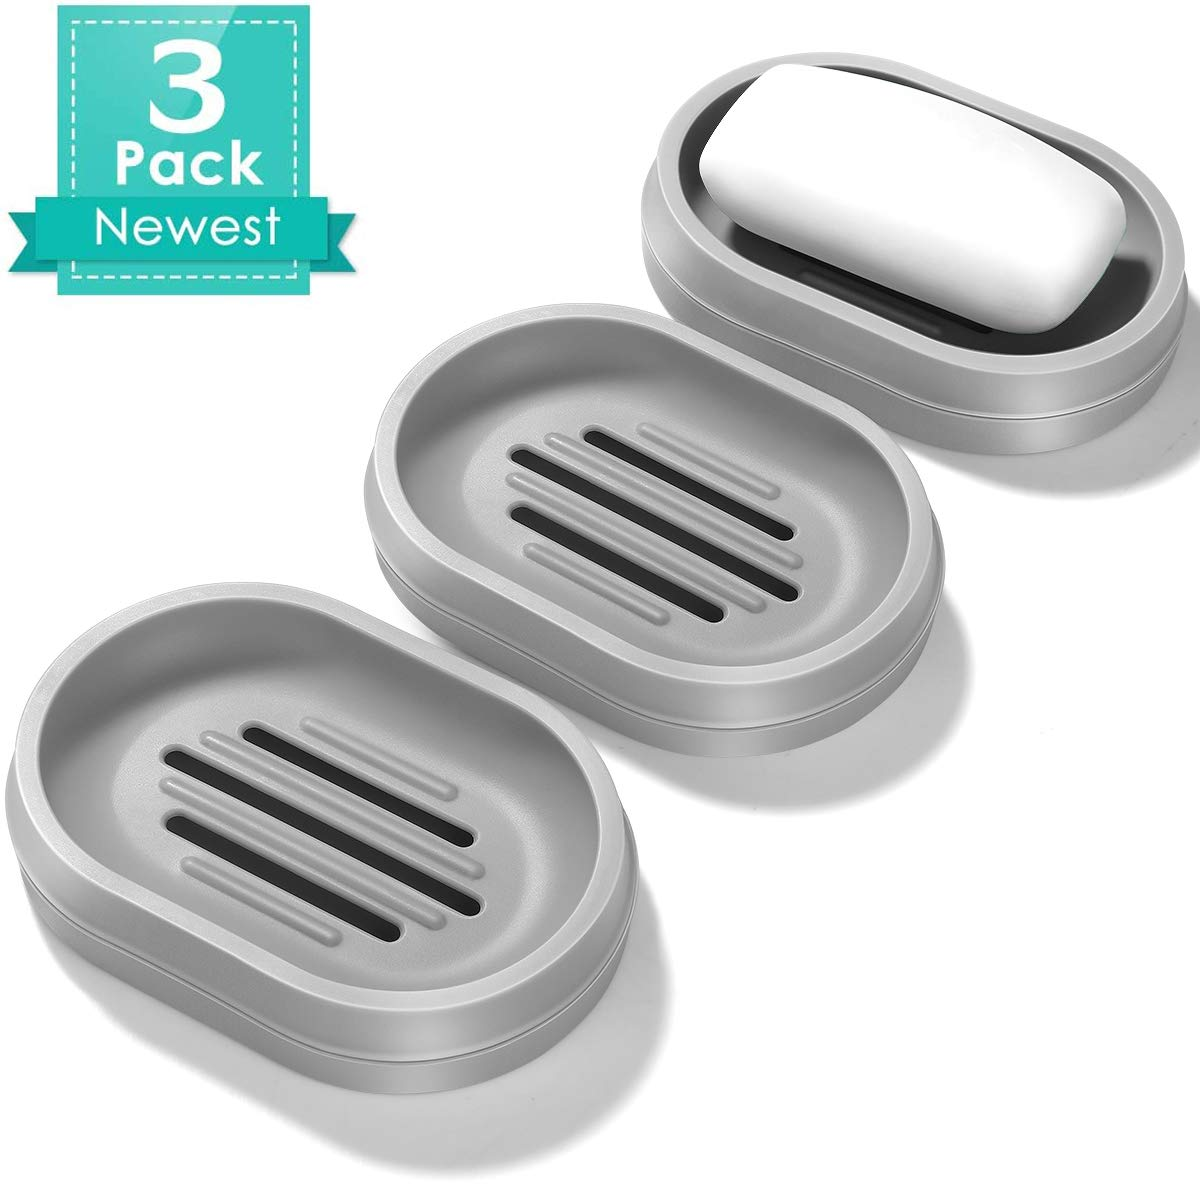 Homemaxs Soap Dishes with Drain 3 Pack, Soap Bar Holder Double-Layer, Soap Saver, Soap Cases, Durable Soap Dishes for Bathroom, Soap Dish for Shower, Easy Cleaning, Dry【2020 Latest】